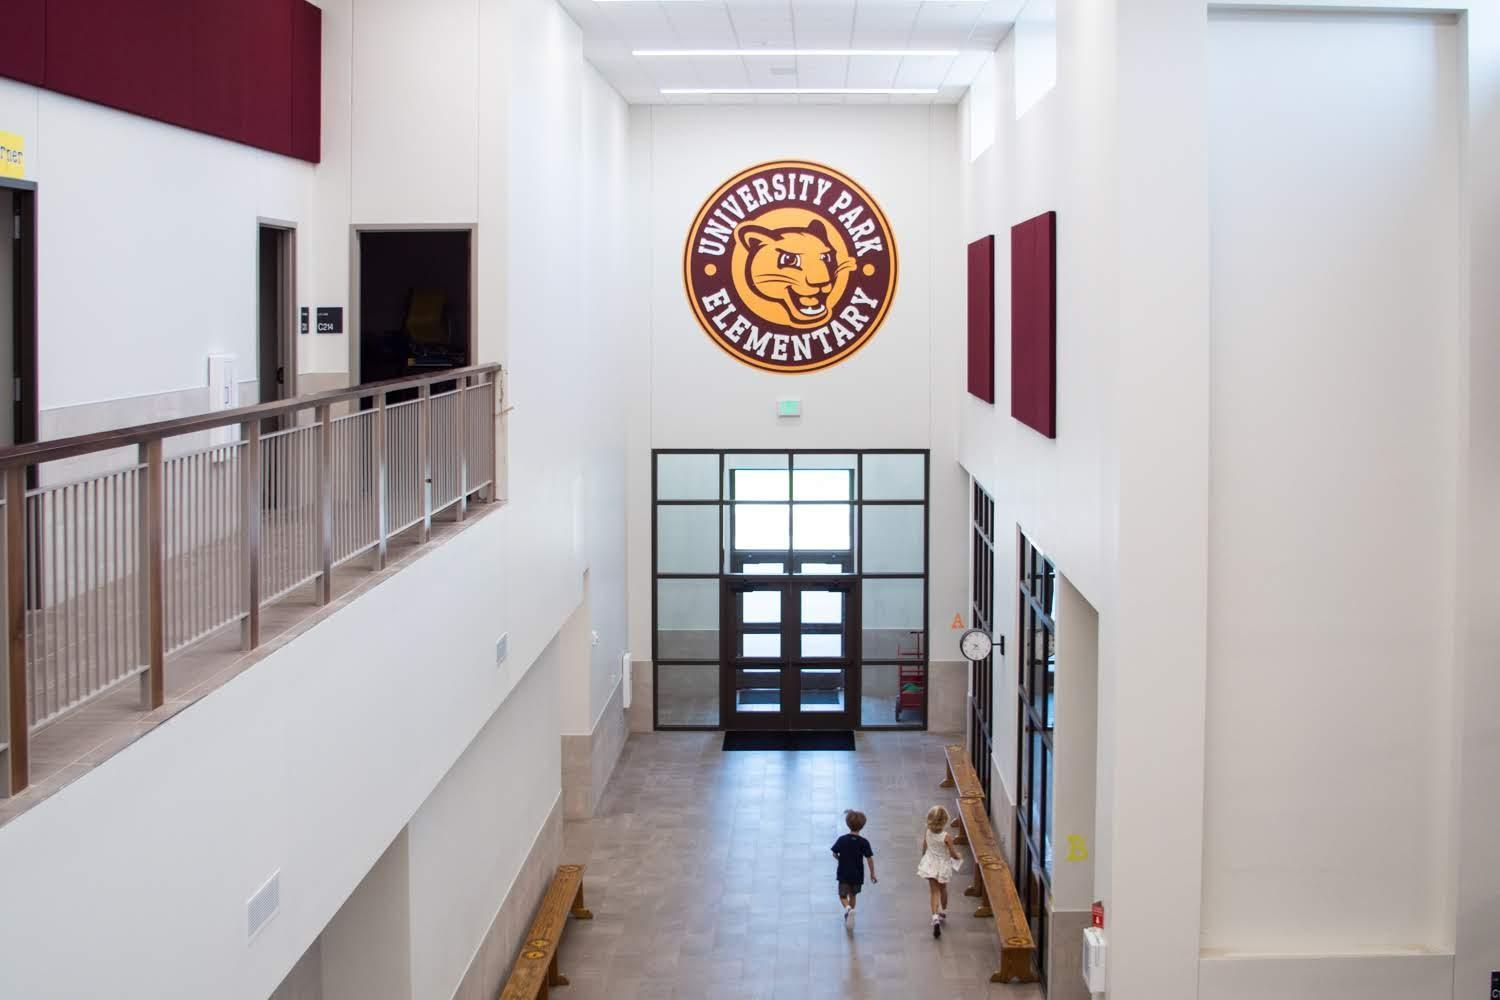 University Park hallway and logo crest on wall